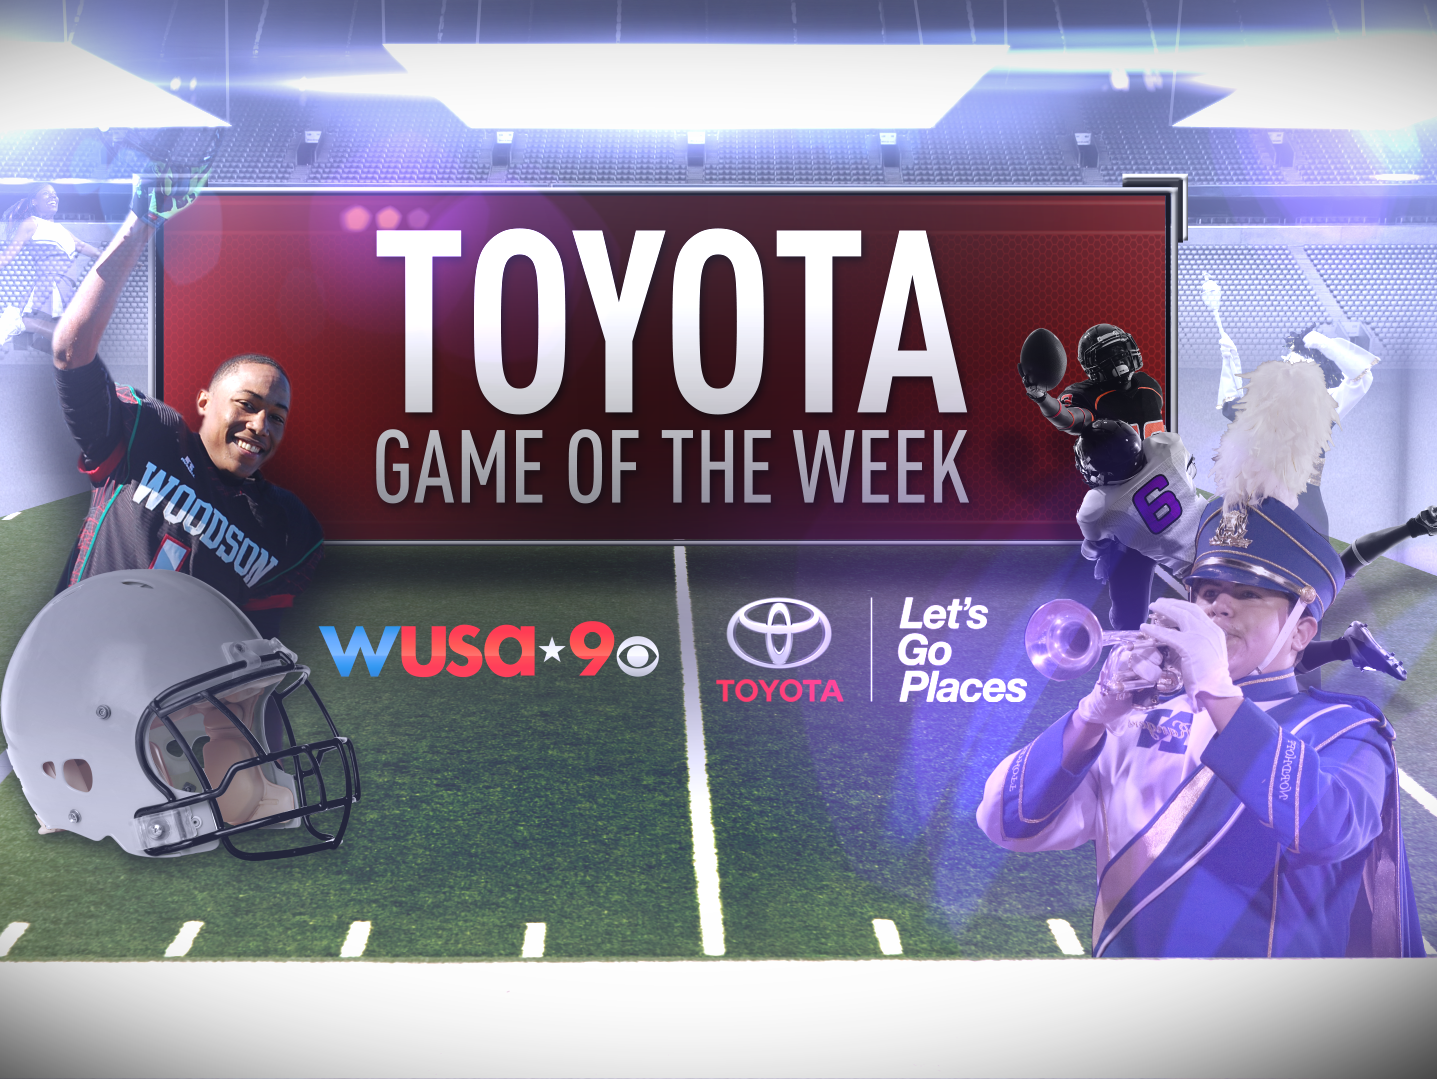 Which matchup should be named Toyota Game Of The Week for Friday, September 19, 2014?